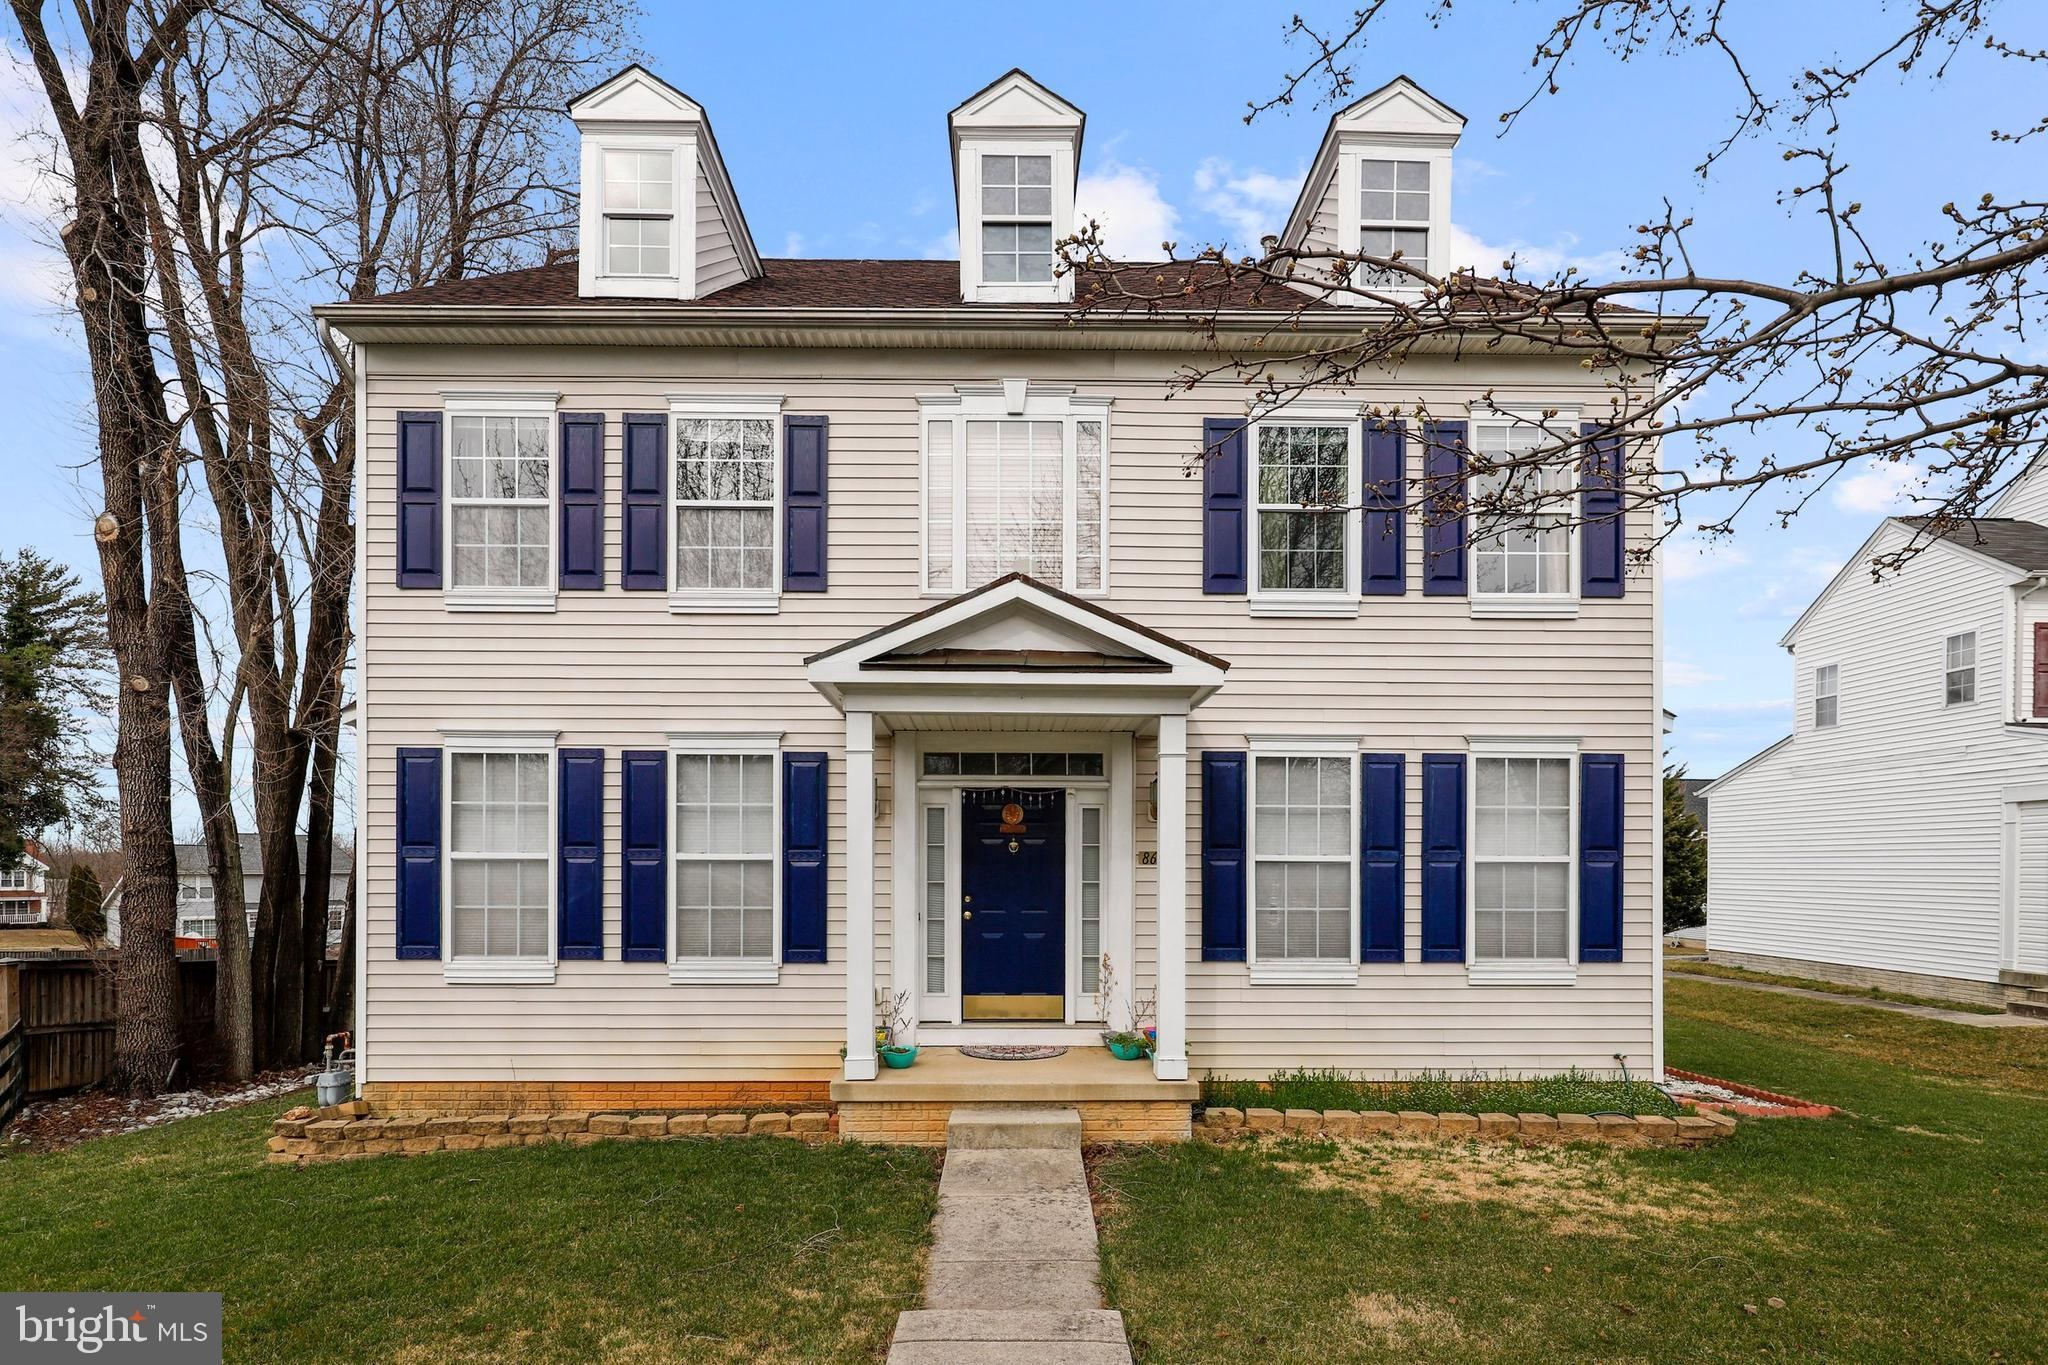 8674 WINANDS ROAD, RANDALLSTOWN, MD 21133